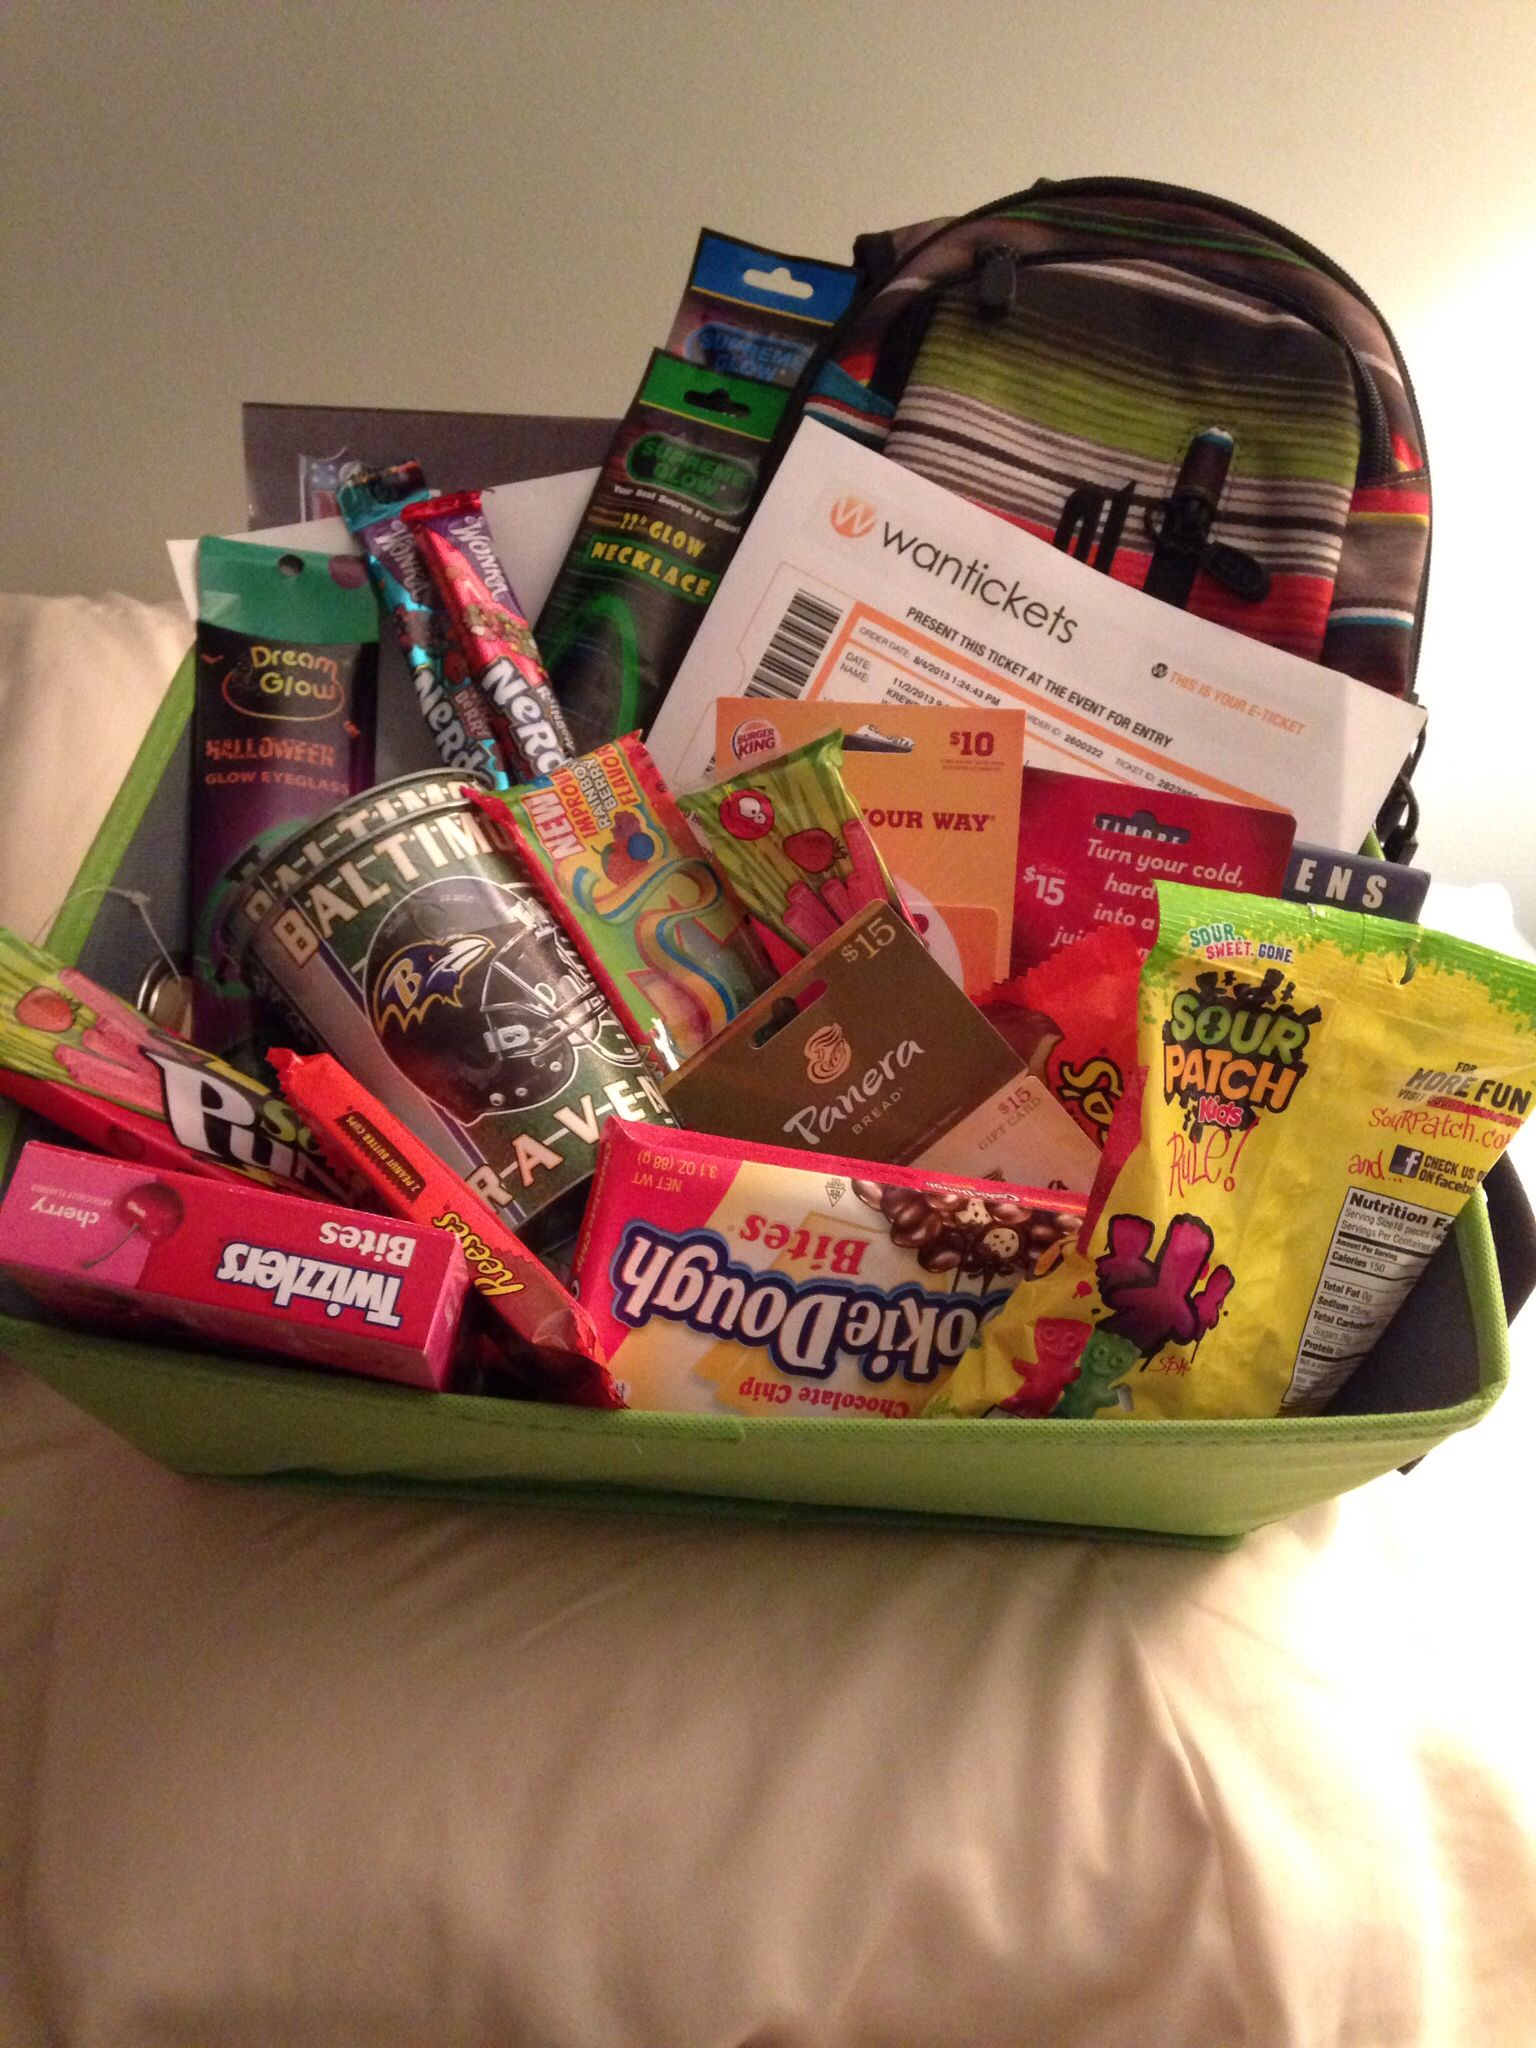 Birthday Gift Basket Idea Filled With Concert Tickets Favorite Candy Online Purchases Etc